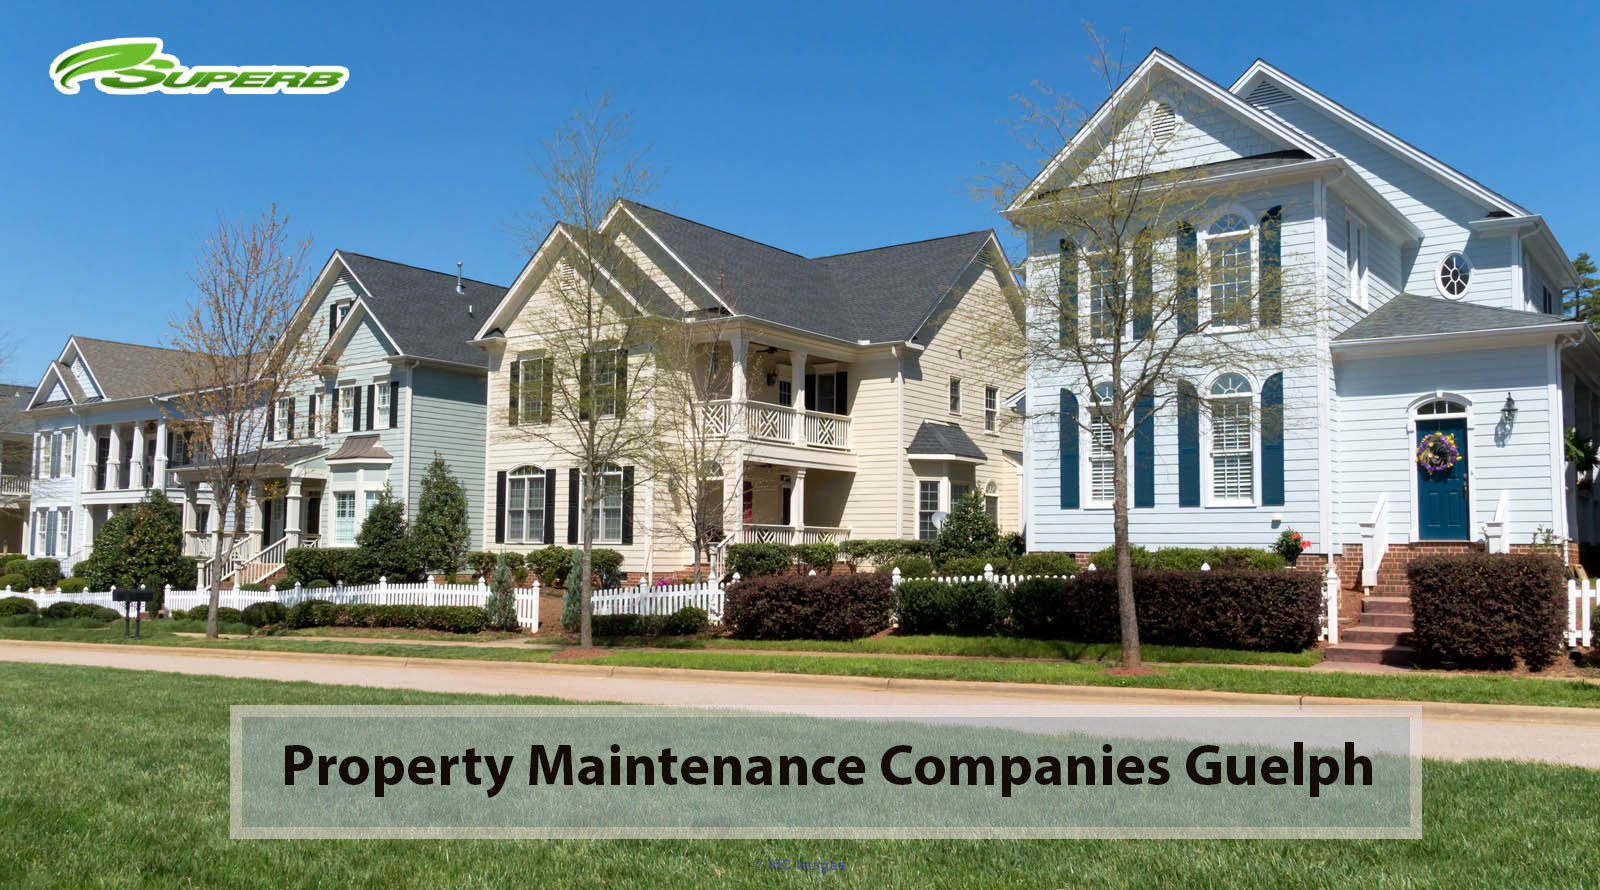 Property Maintenance Companies Guelph Ontario Calgary, Alberta, Canada Classifieds